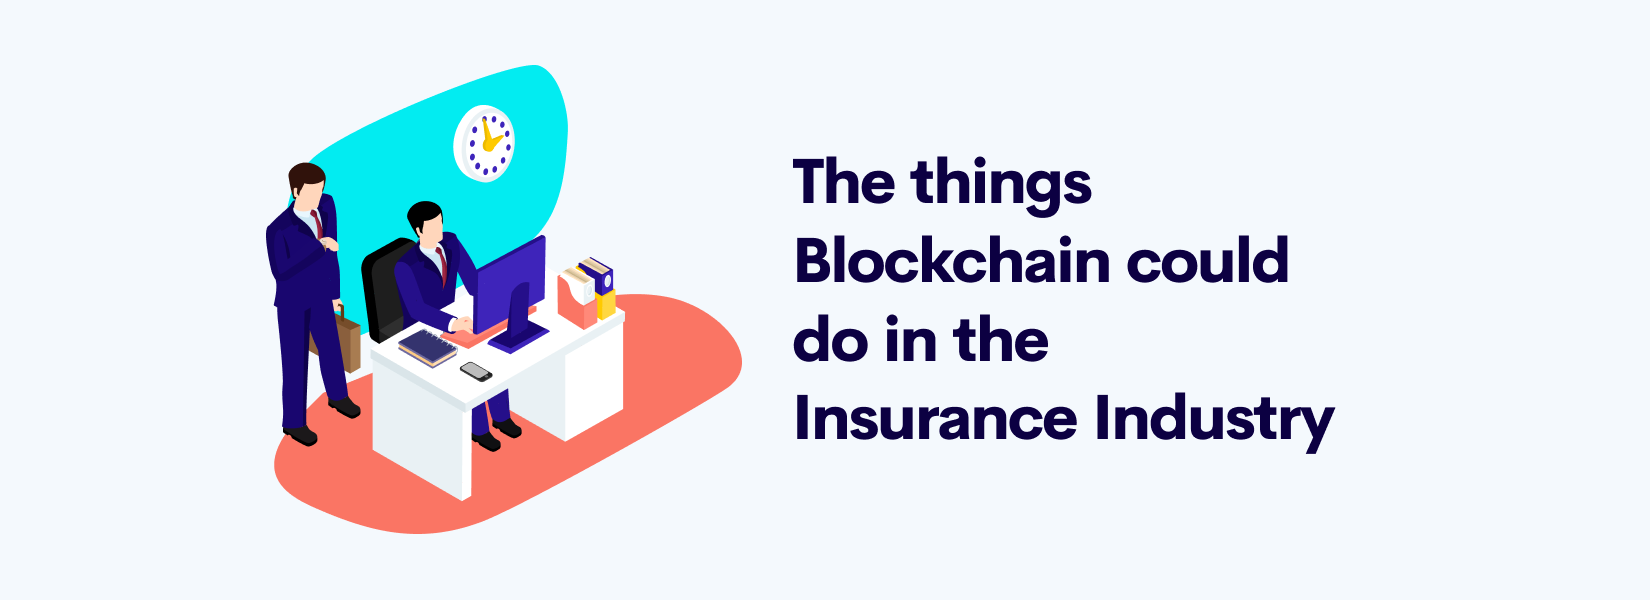 The things Blockchain could do in the Insurance Industry